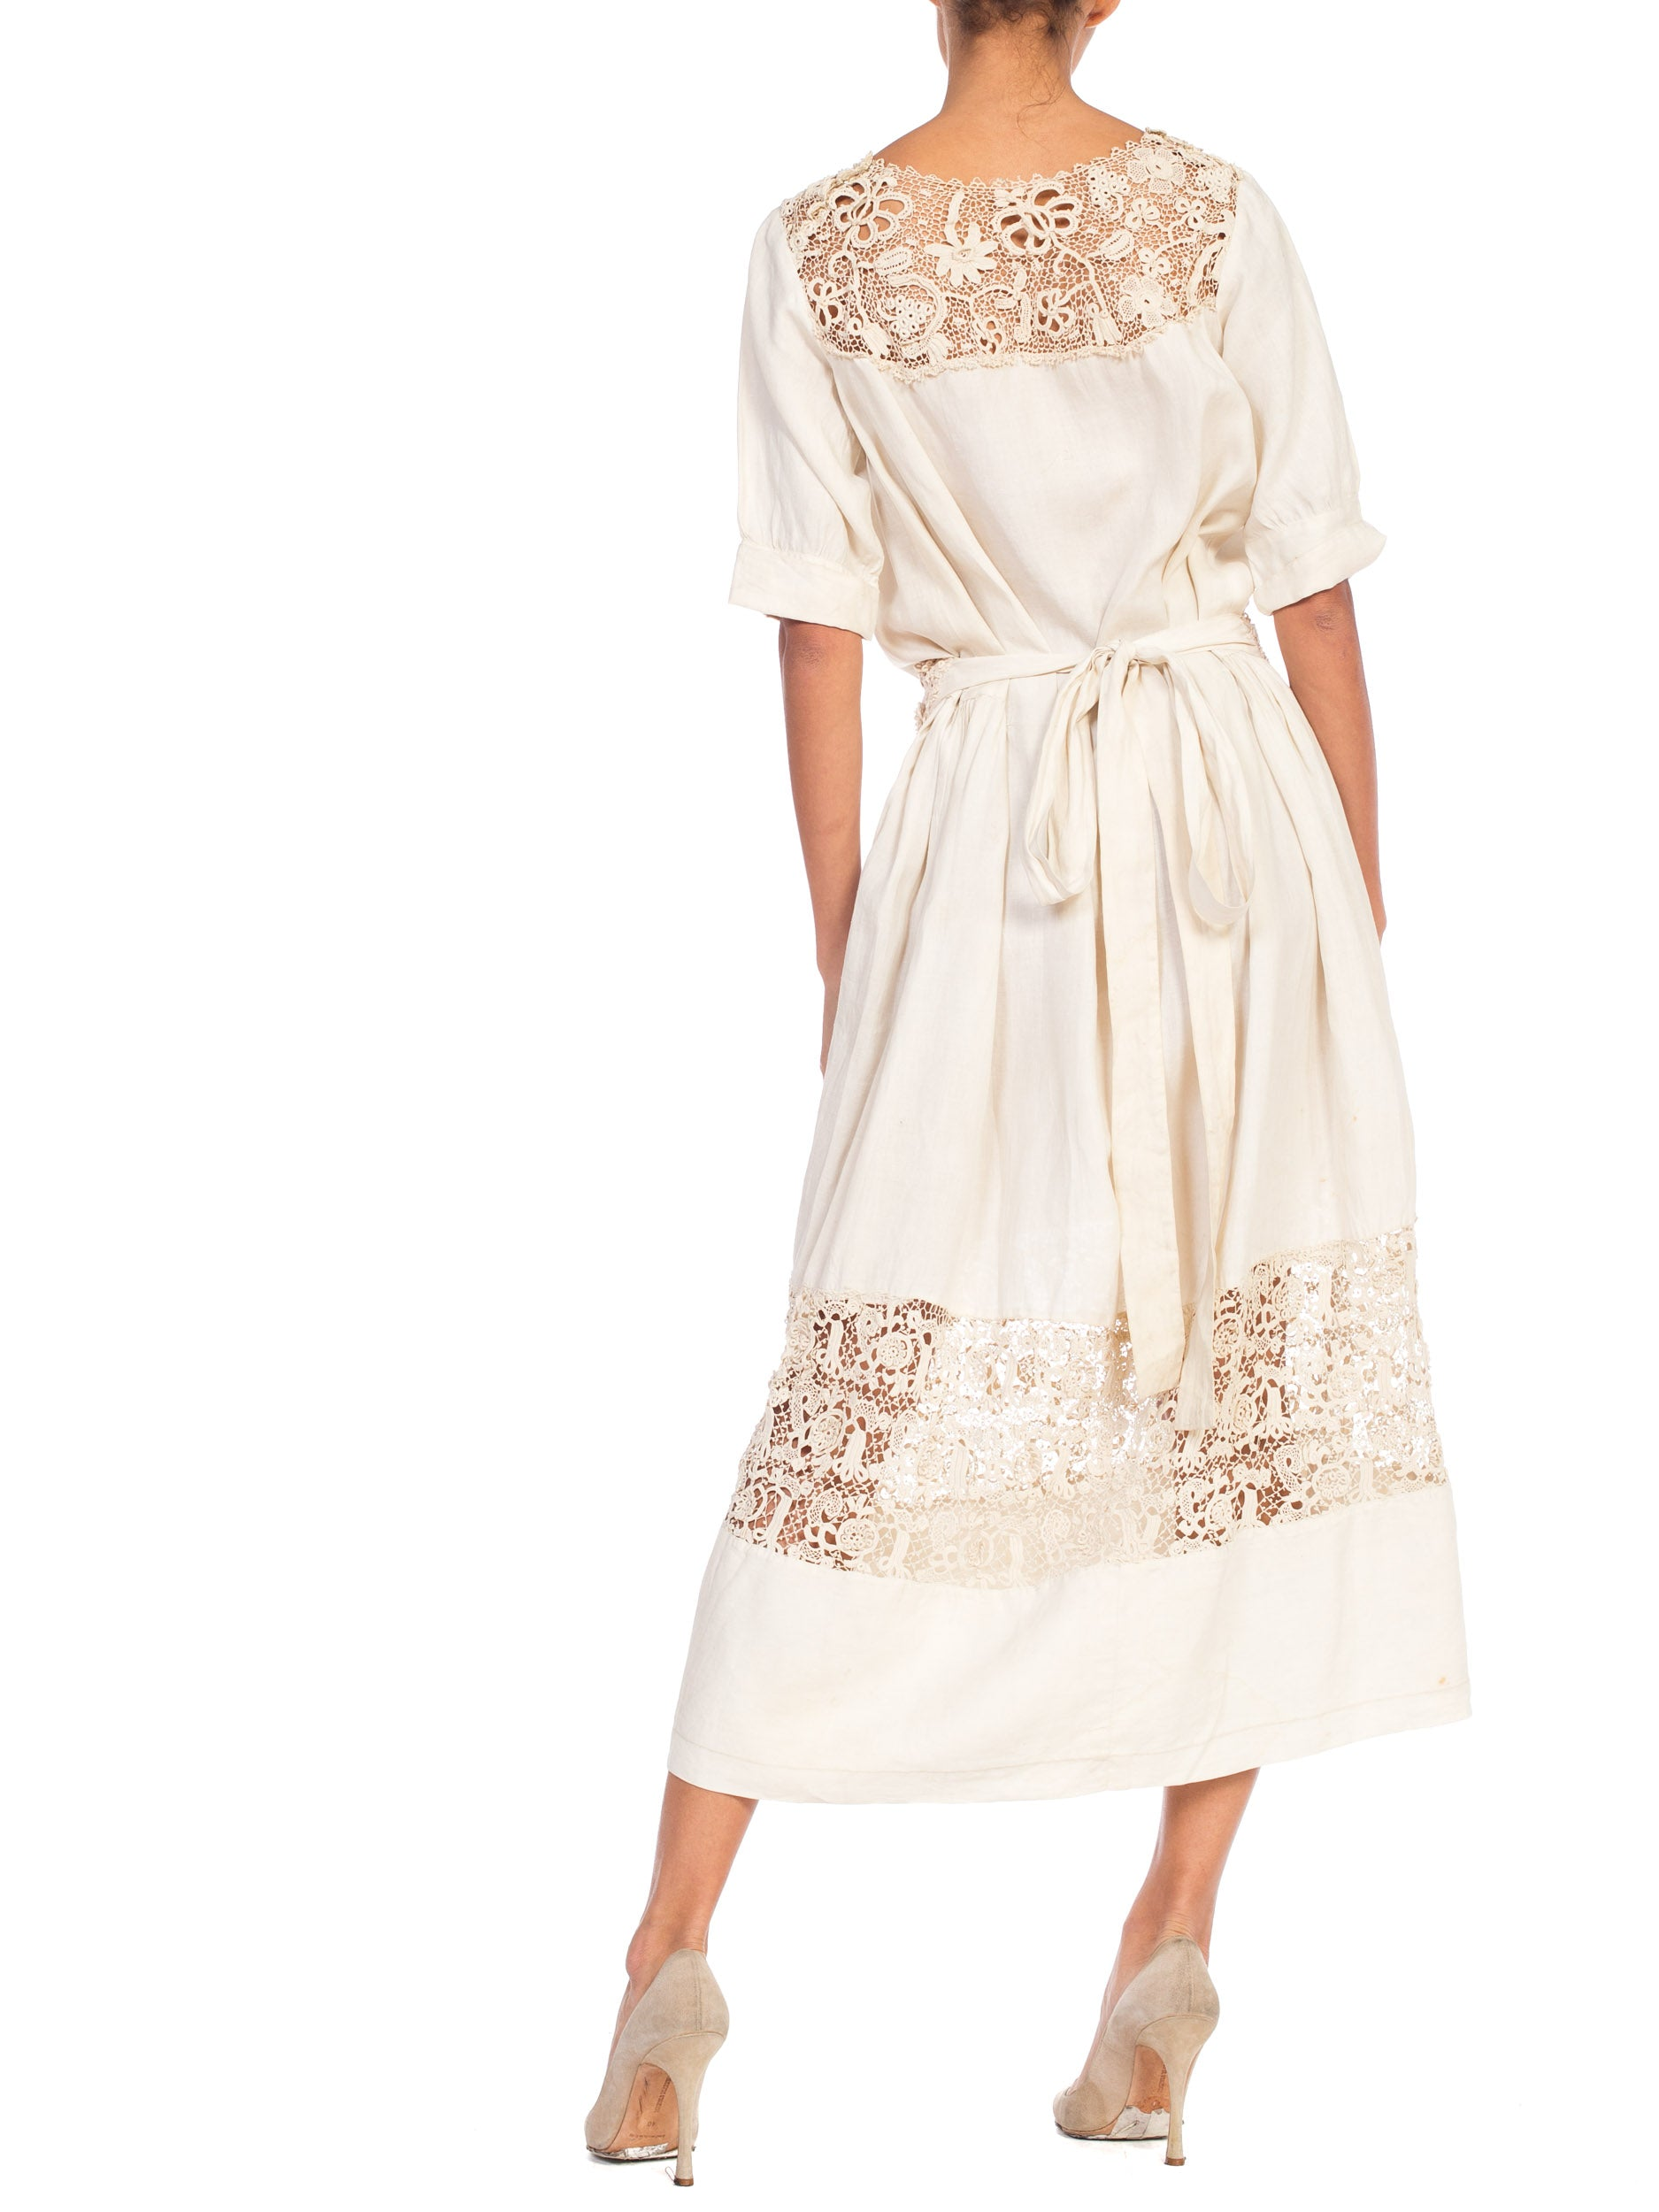 Edwardian Ecru Linen Tea Dress With Hand Made Irish Crochet Lace Panels